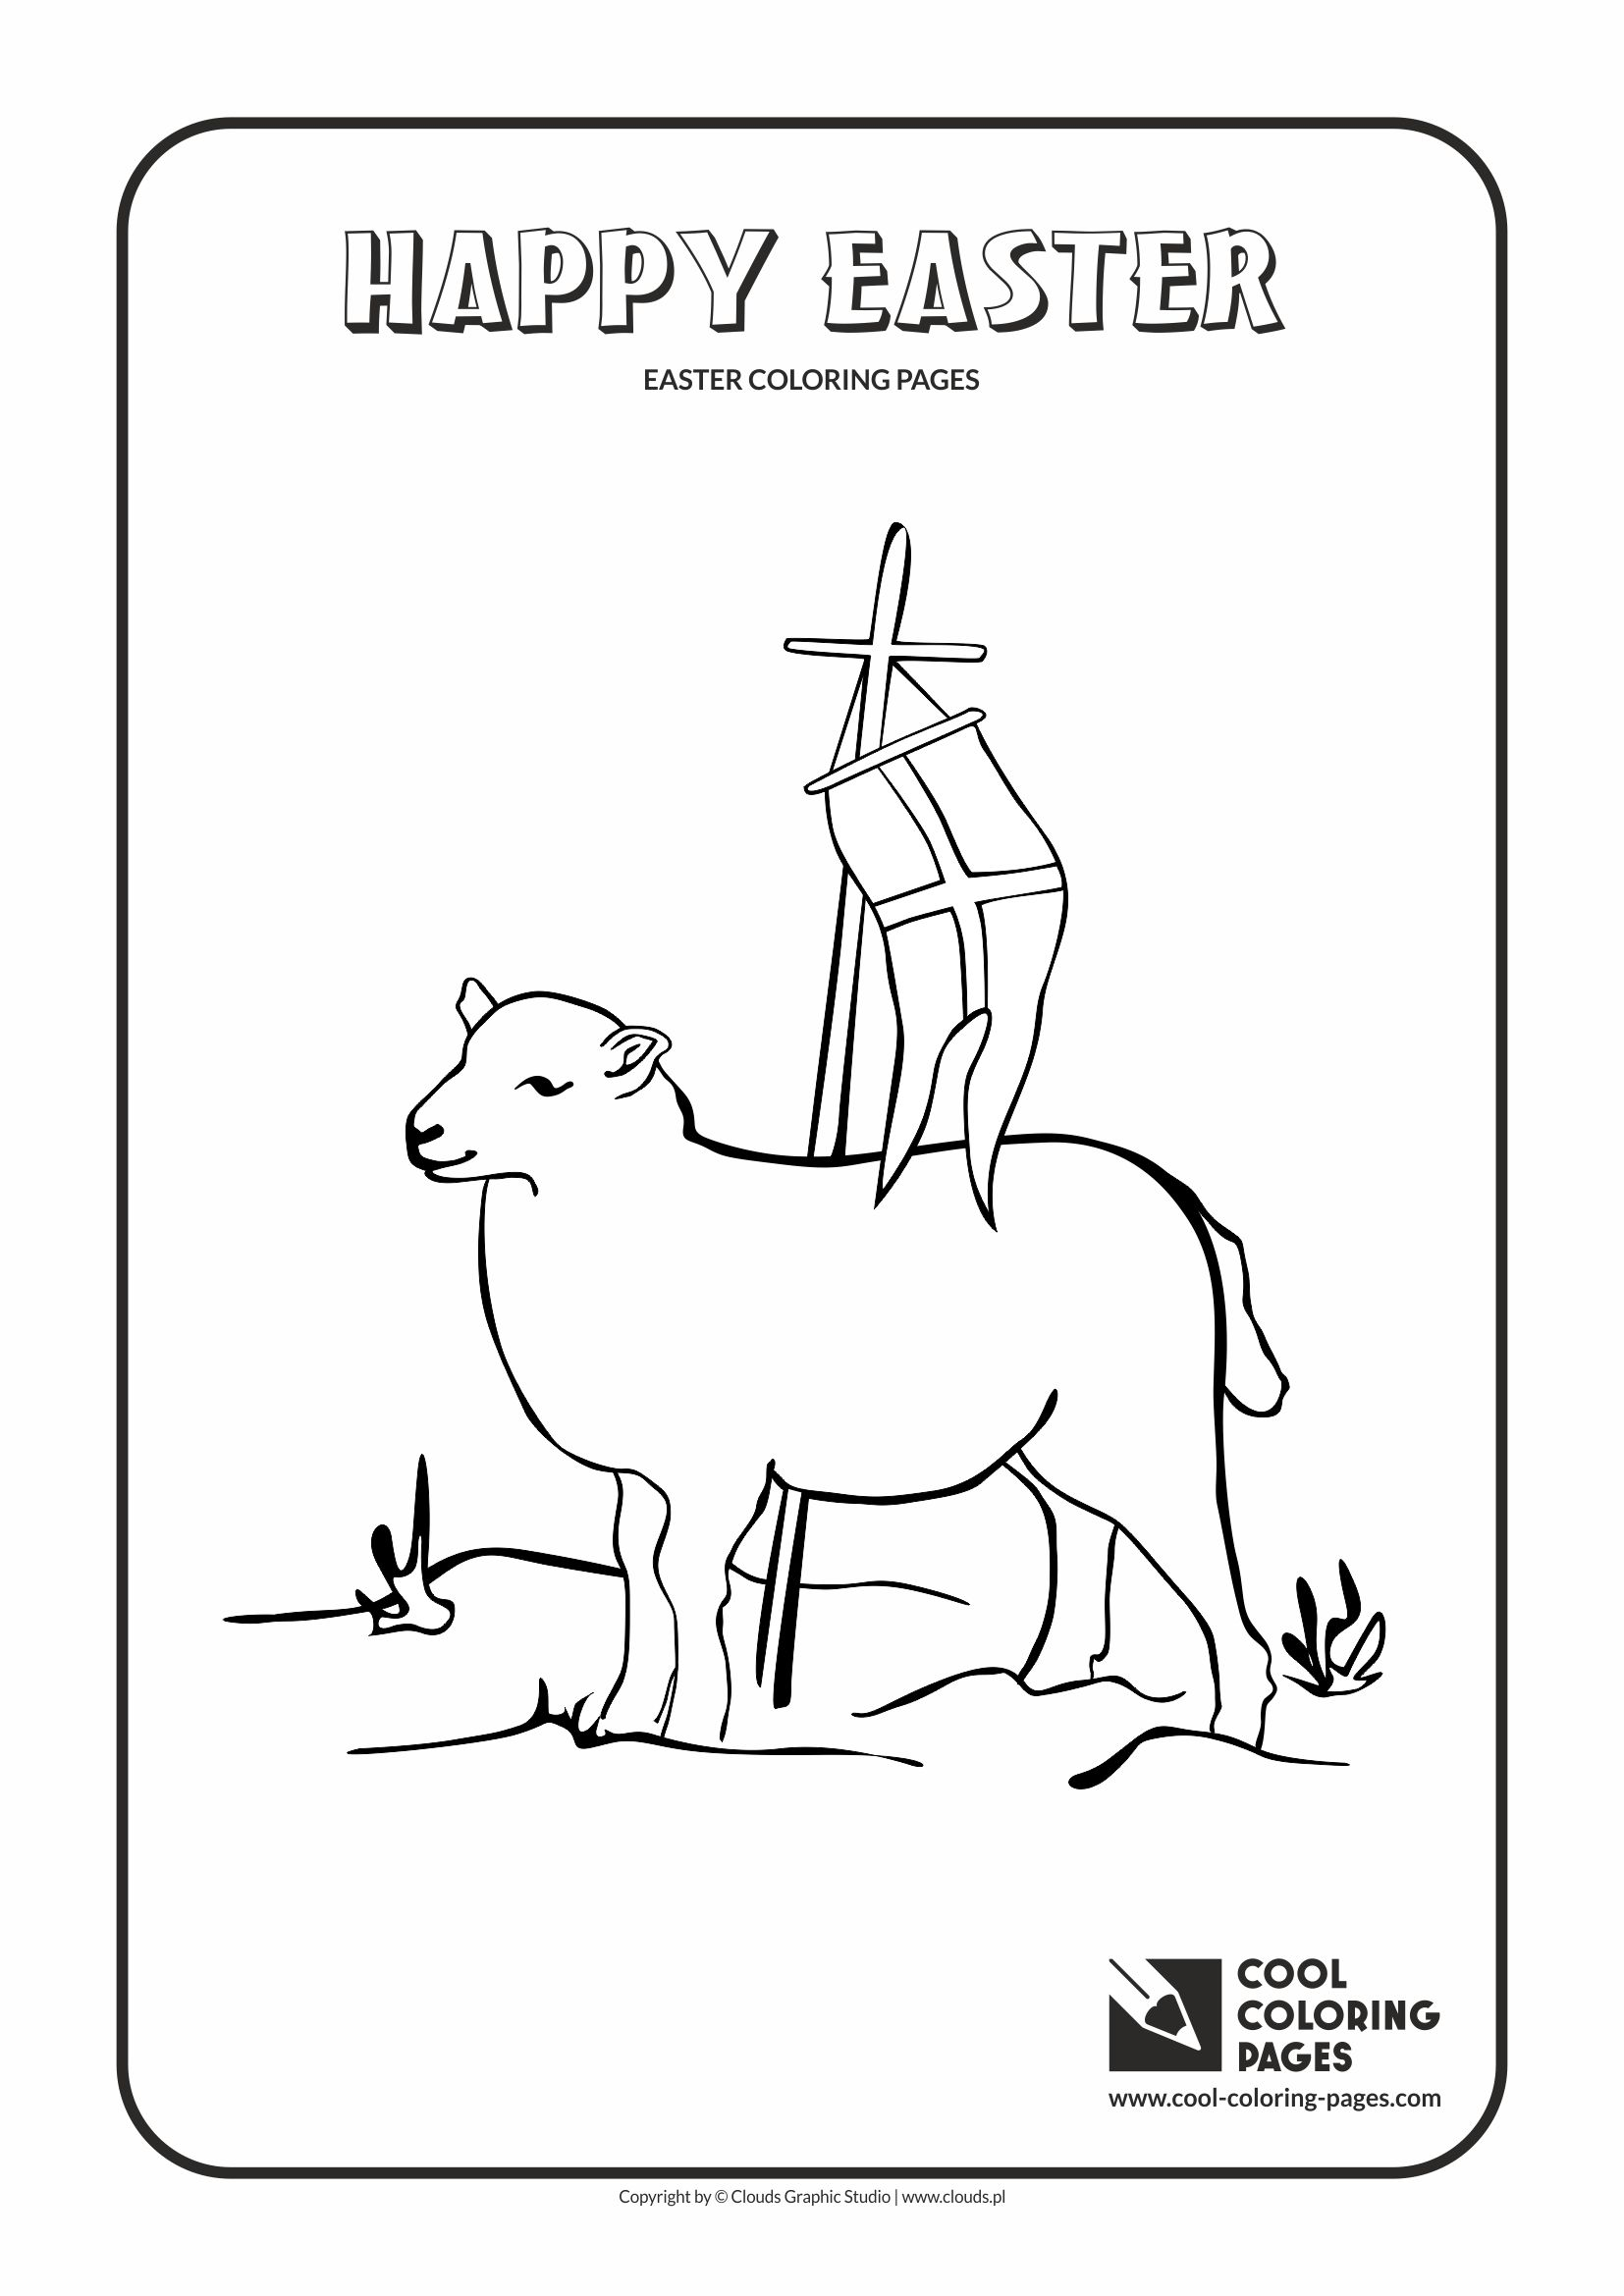 Cool Coloring Pages - Holidays / Easter lamb no 2 / Coloring page with Easter lamb no 2